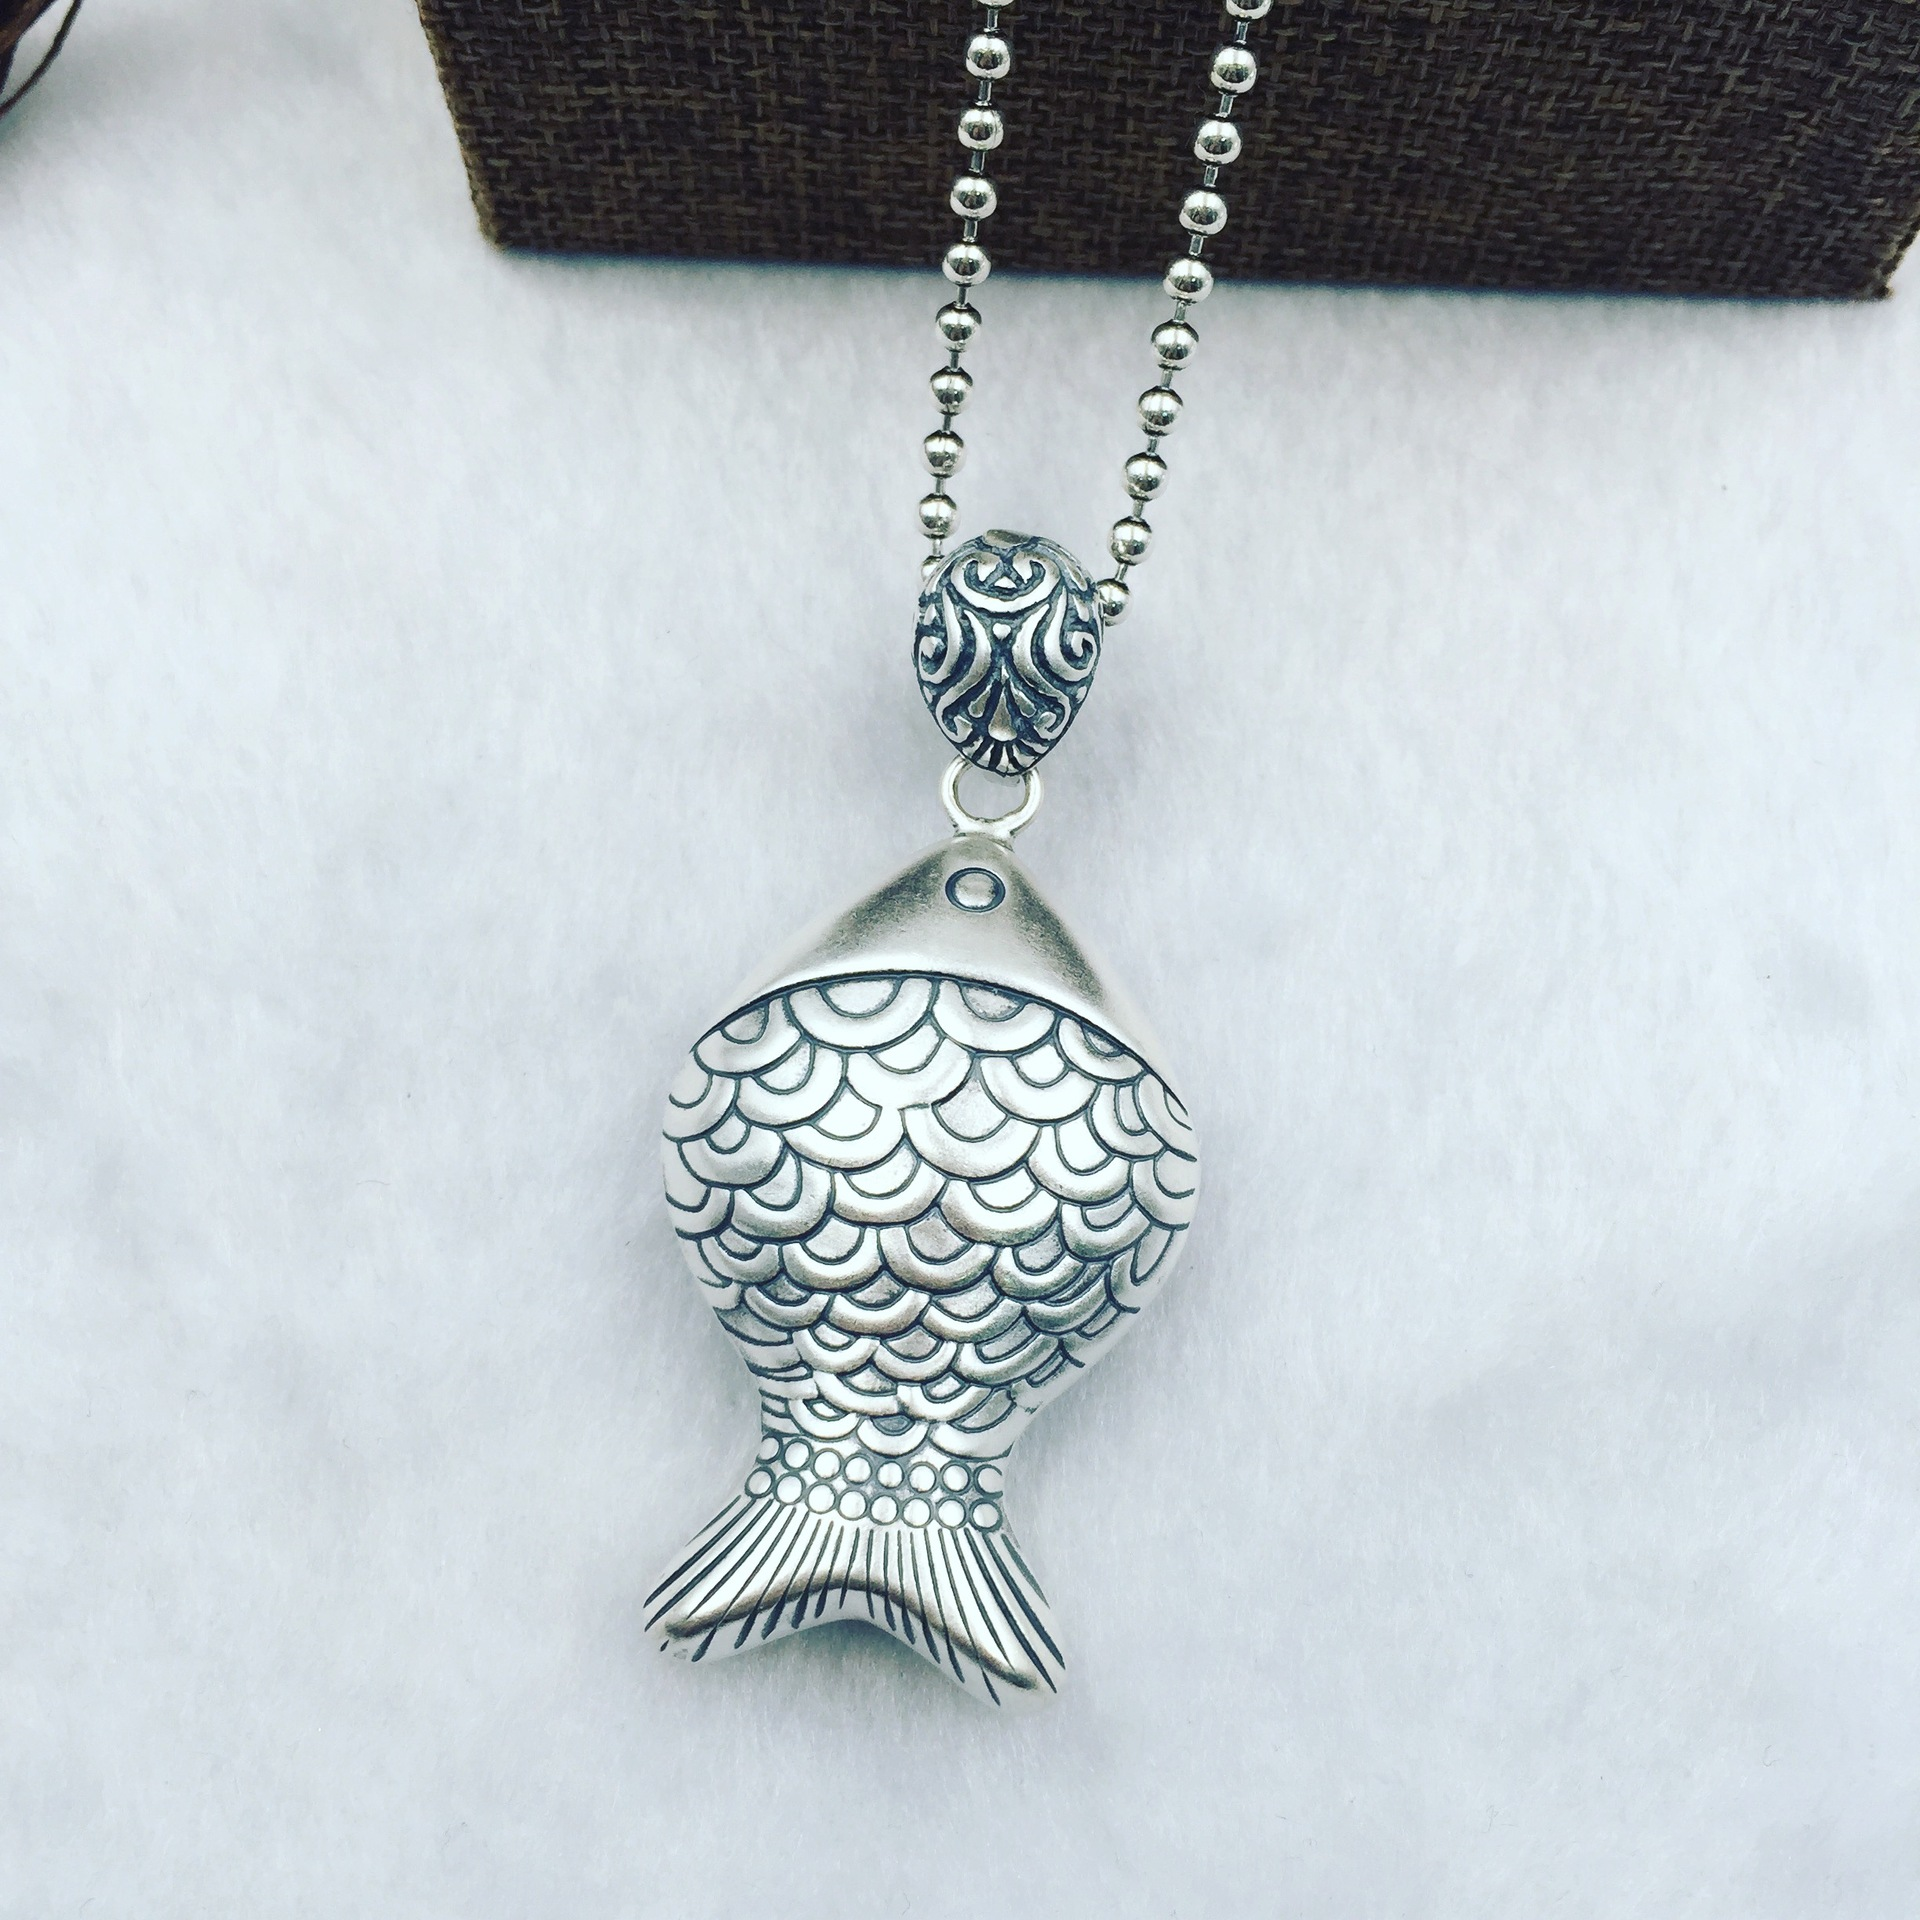 The ancient Thai koi carp heart genuine S990 Zuyin silver silver pendant Pendant Chain sweater factory direct genuine s925 sterling silver pendant silver abacus activities auspicious clouds sweater chain pendant factory direct